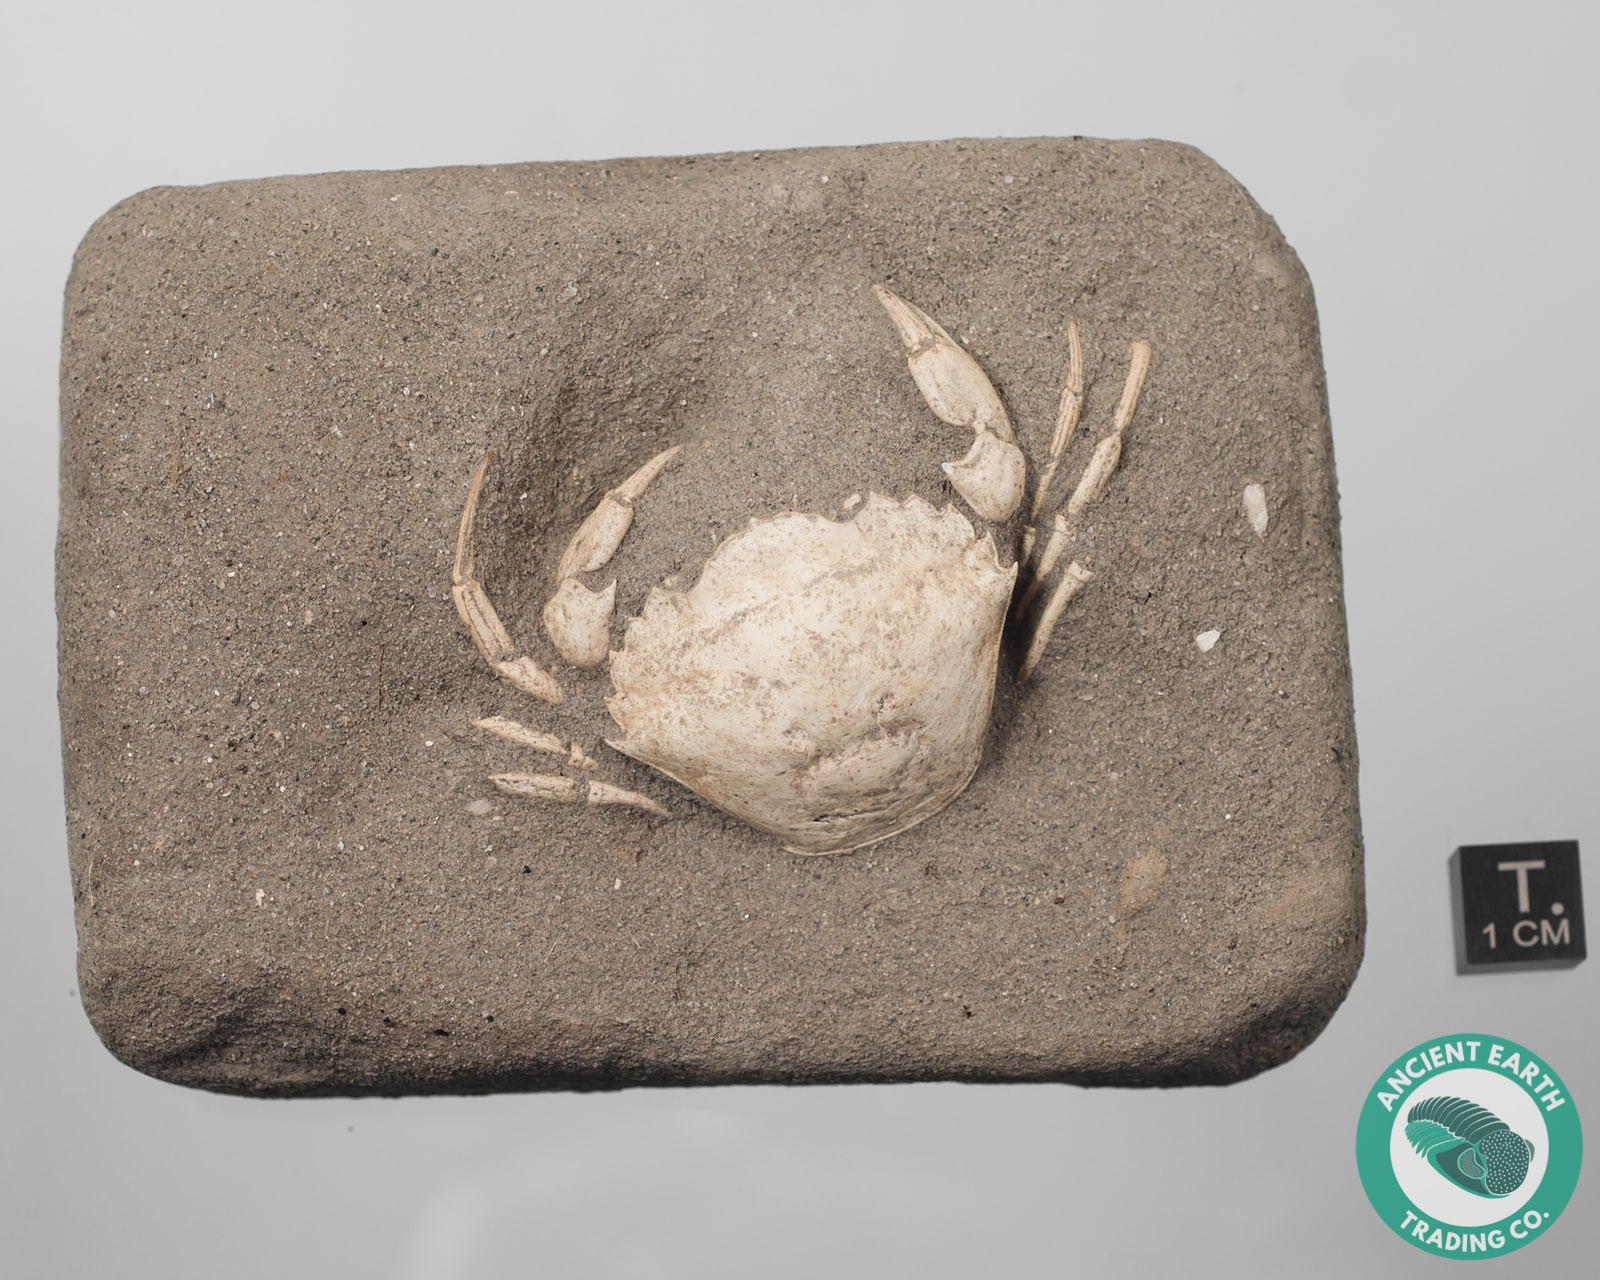 Portunites Swimming Crab Fossil from Italy